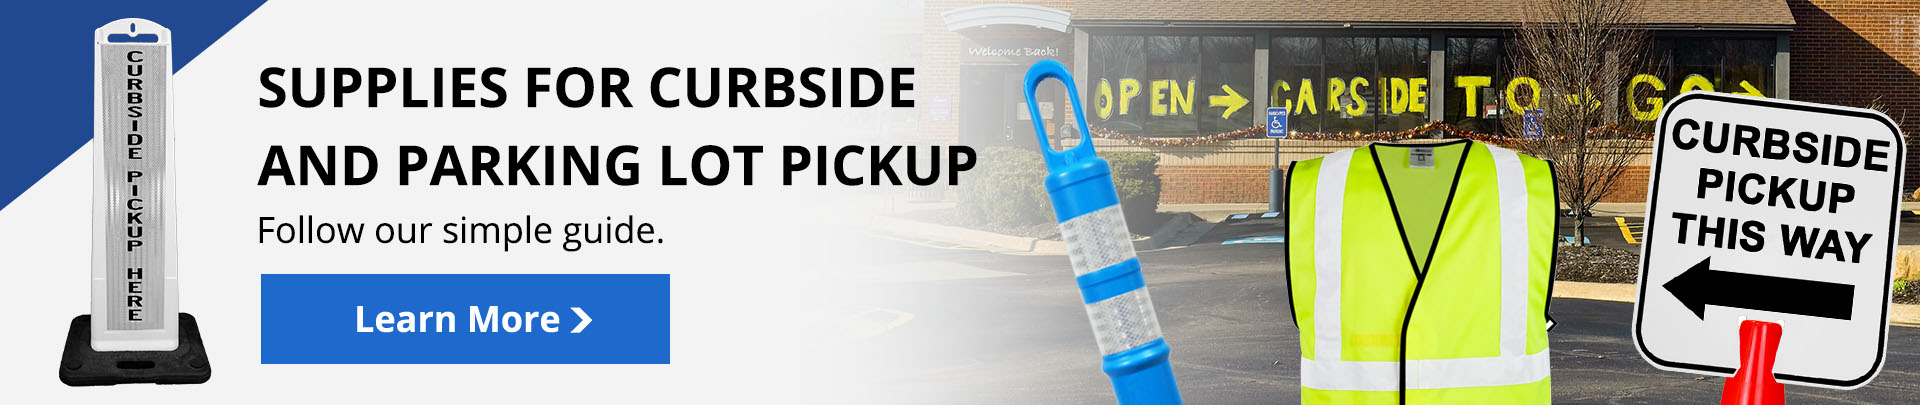 Exactly what restaurants need for curbside or parking lot pickup